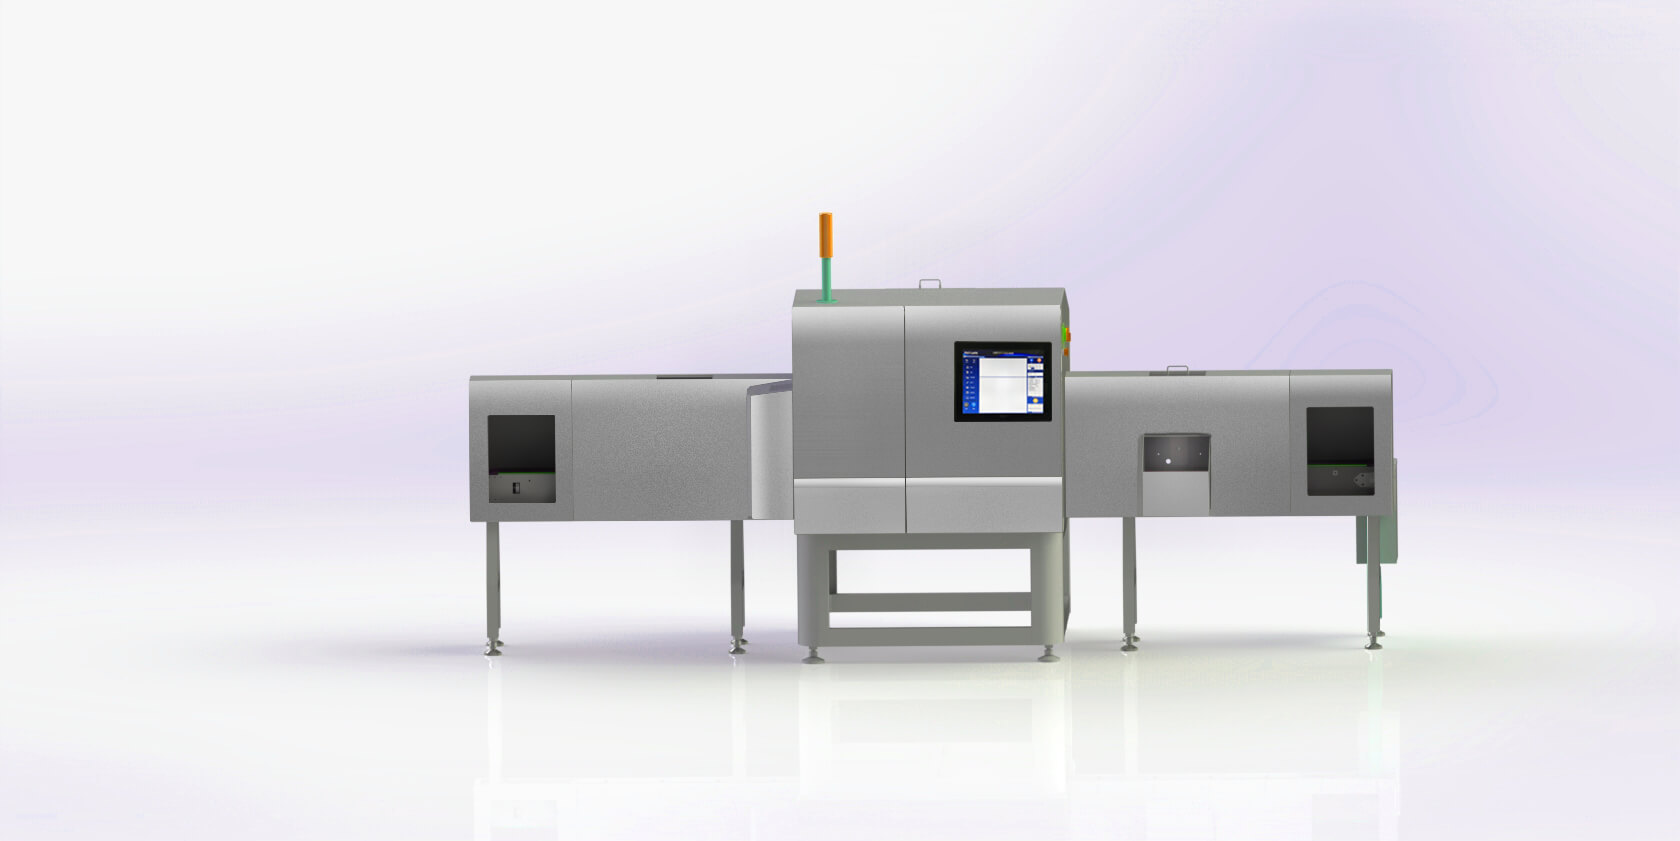 X-Ray Inspection system for Packaged and Unpackaged canned